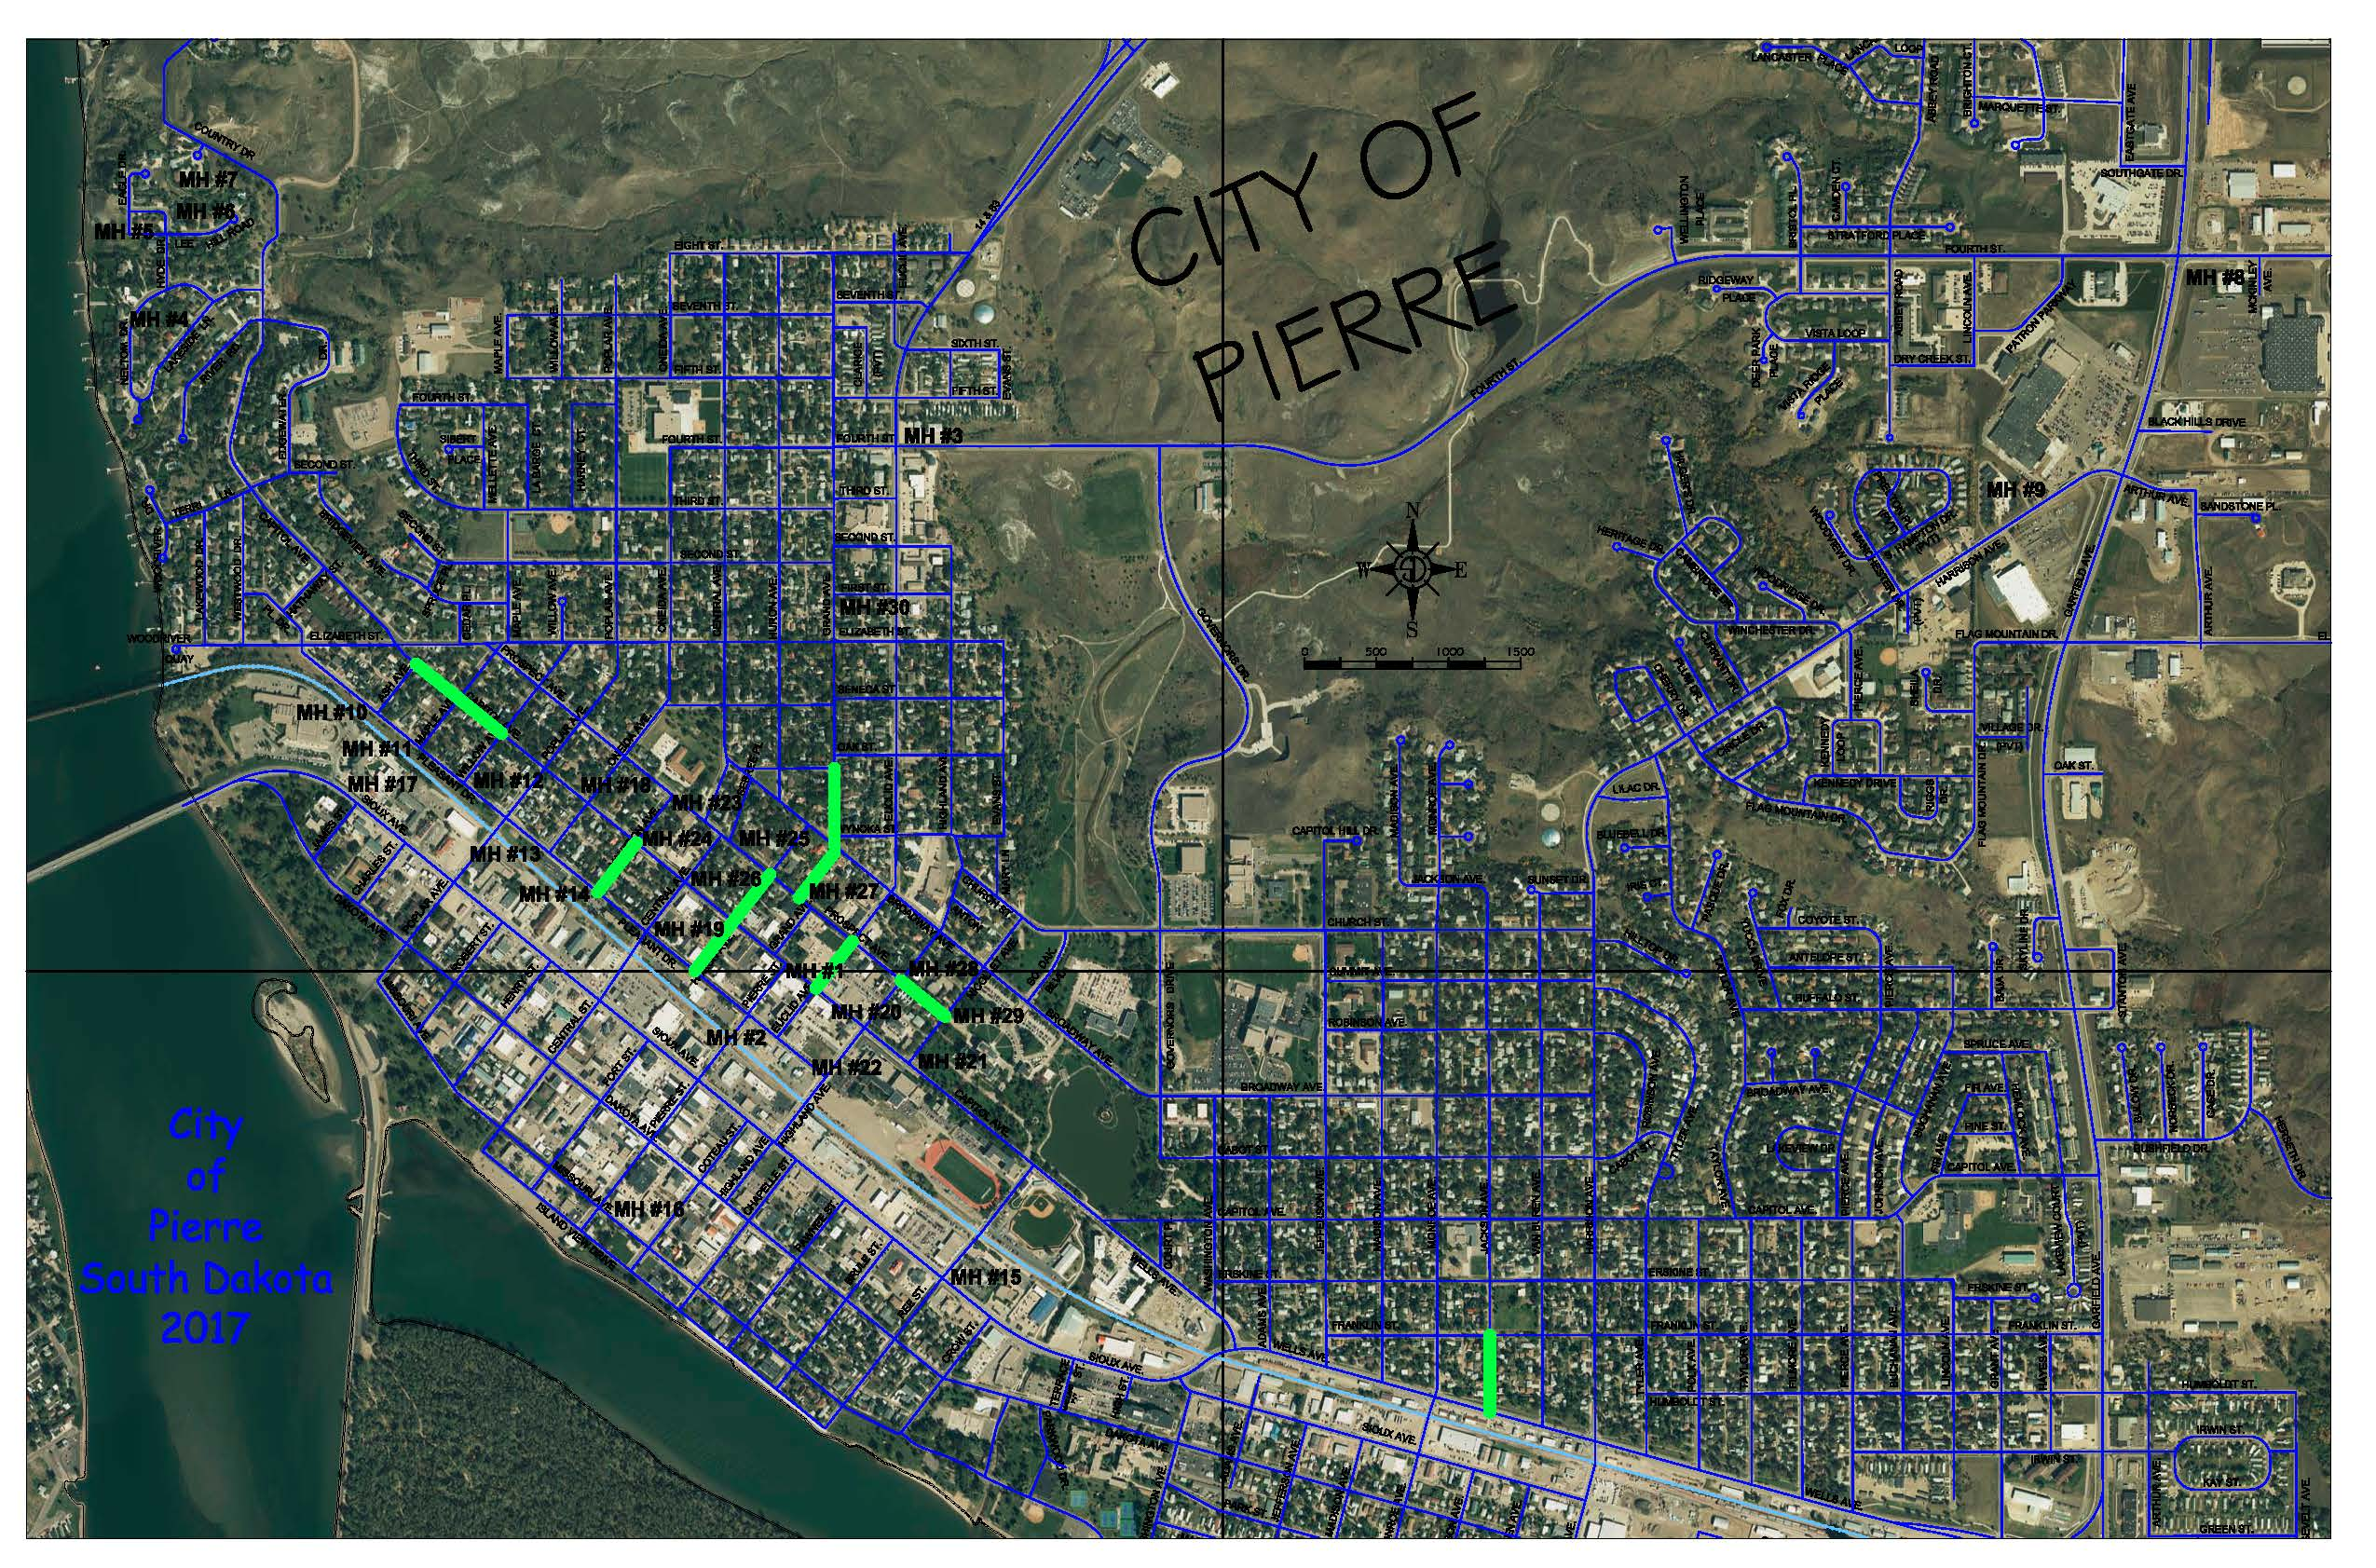 SANITARY SEWER REHAB MAP